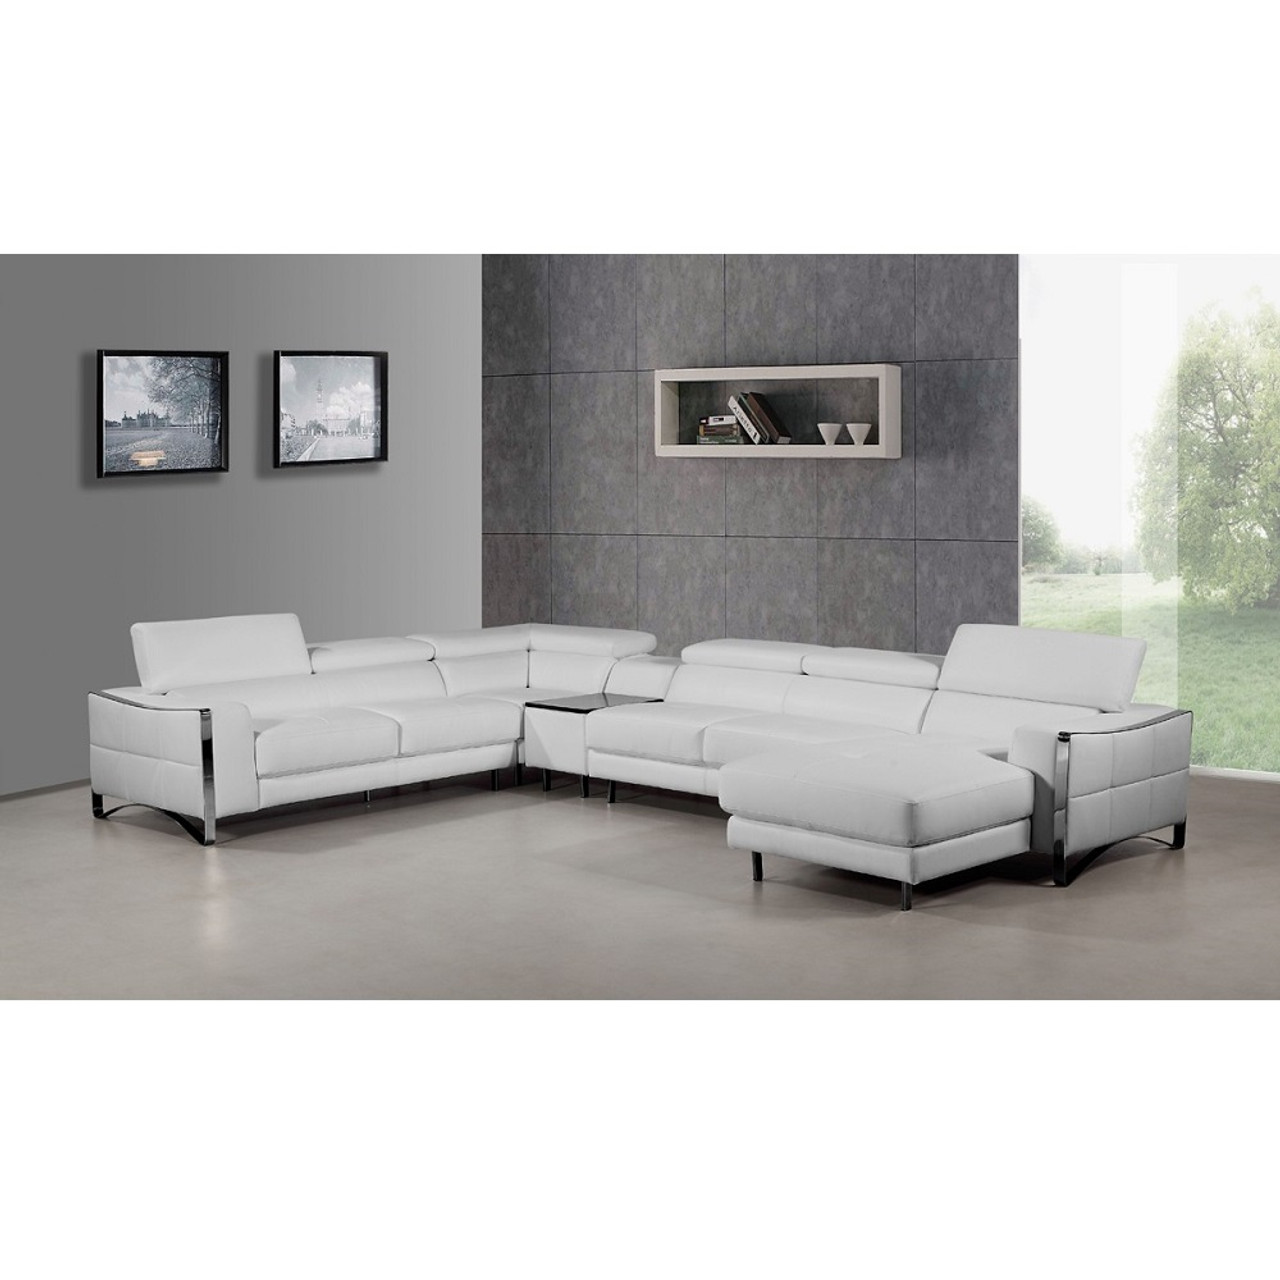 Awe Inspiring Divani Casa Arles Modern White Leather Sectional Sofa Ocoug Best Dining Table And Chair Ideas Images Ocougorg